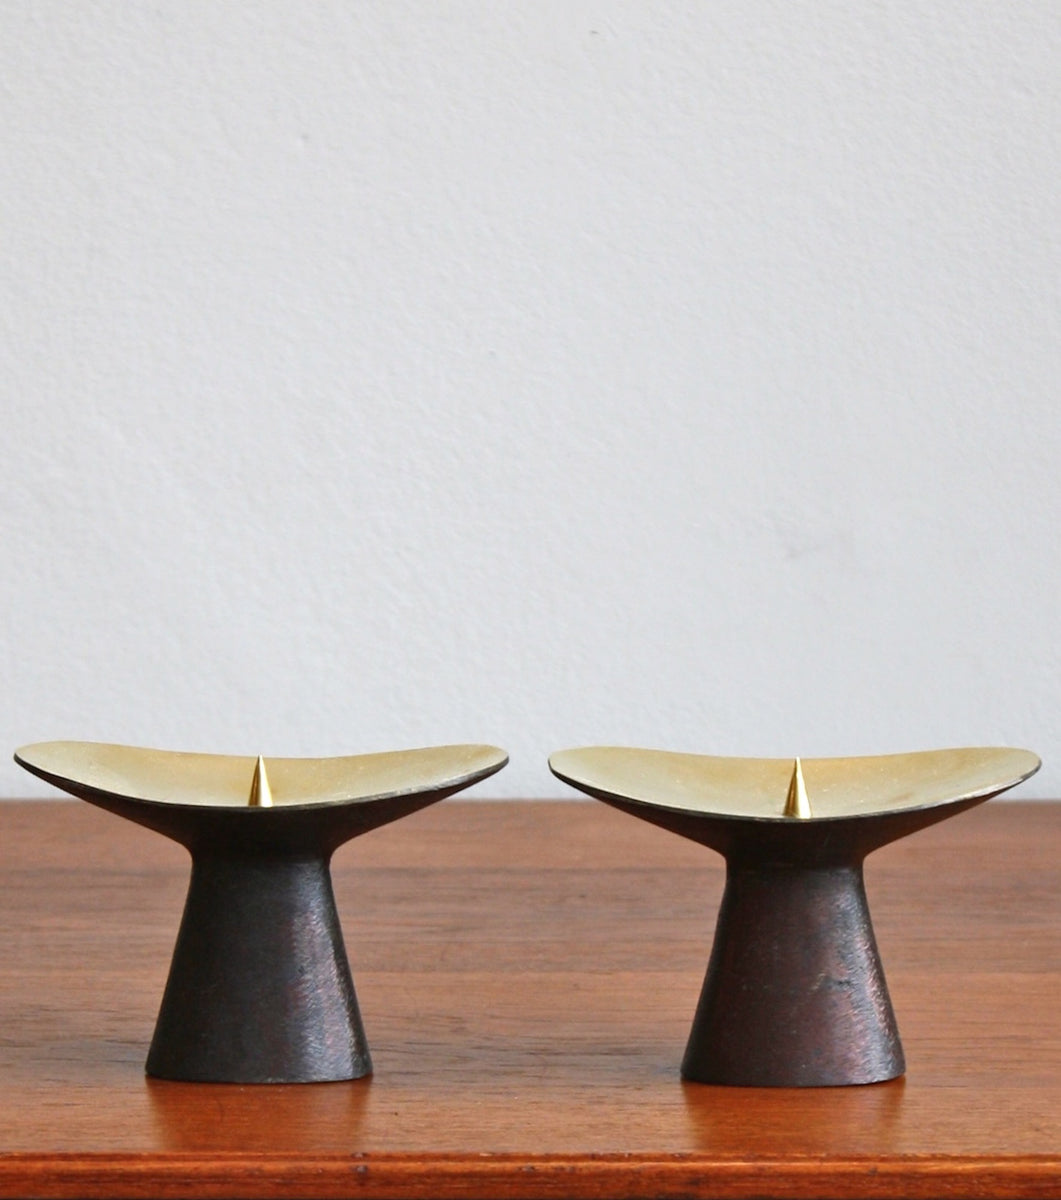 Patinated Brass Candlesticks Carl Auböck  - Image 2